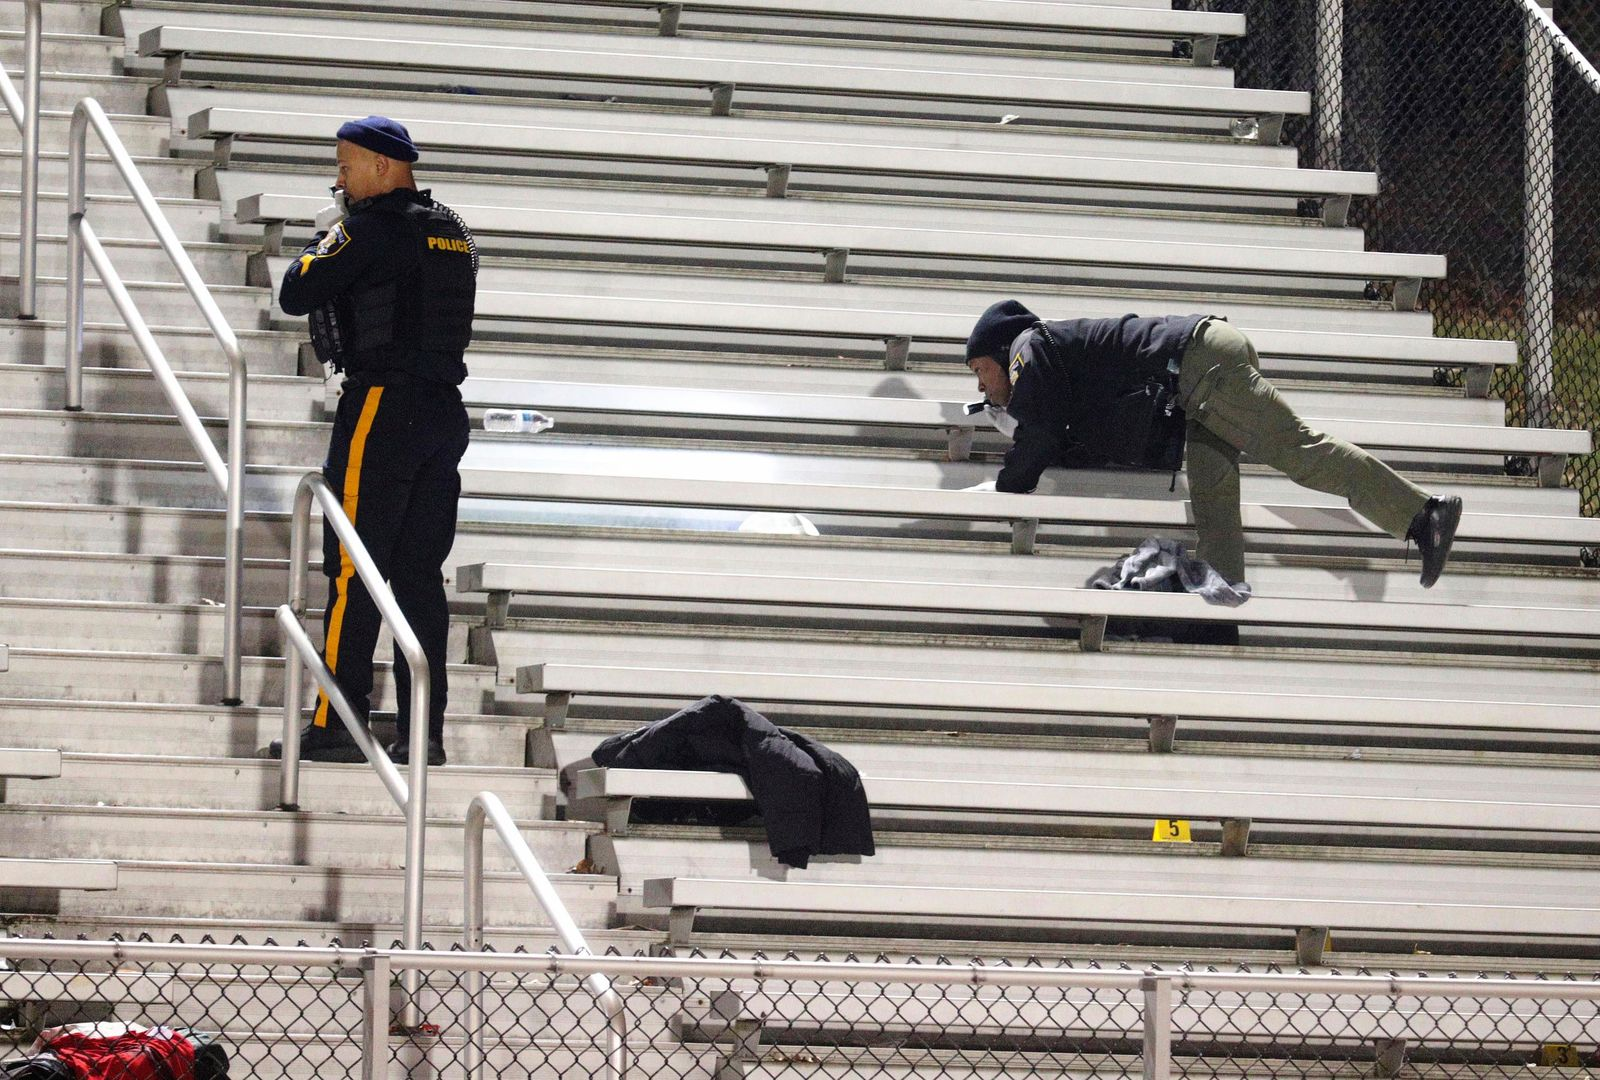 Pleasantville police search the stands after a shooting during a football game at Pleasantville High School in Pleasantville, N.J., Friday, Nov. 15, 2019. Players and spectators ran for cover Friday night when a gunman opened fire at the New Jersey high school football game. (Edward Lea/The Press of Atlantic City via AP)